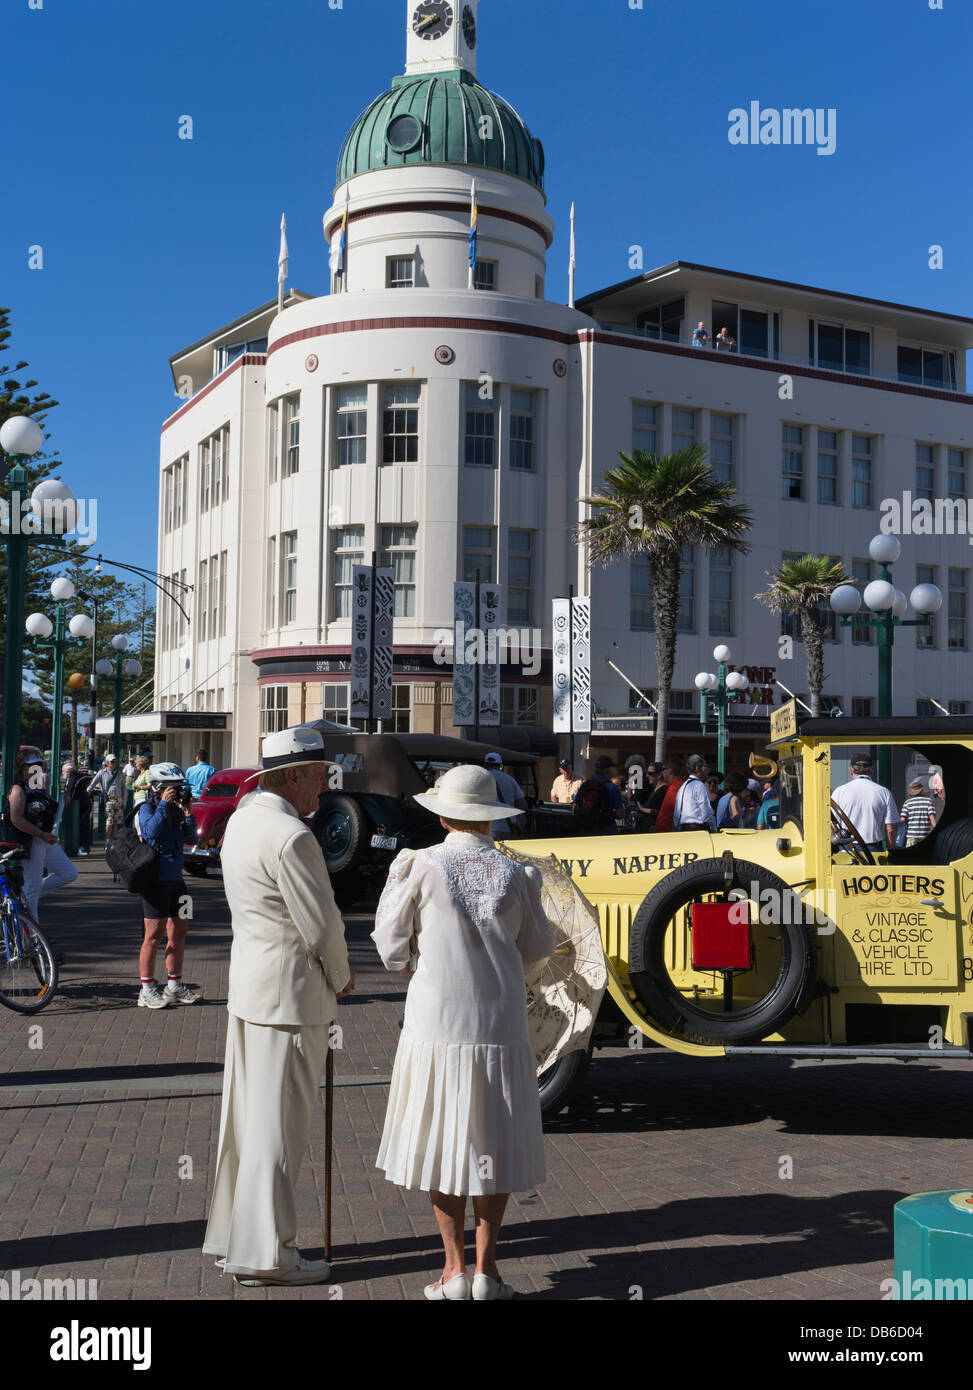 dh Dome TG building NAPIER NEW ZEALAND Elderly couple dressed Art Deco Weekend festival vintage lorry people 1930s - Stock Image